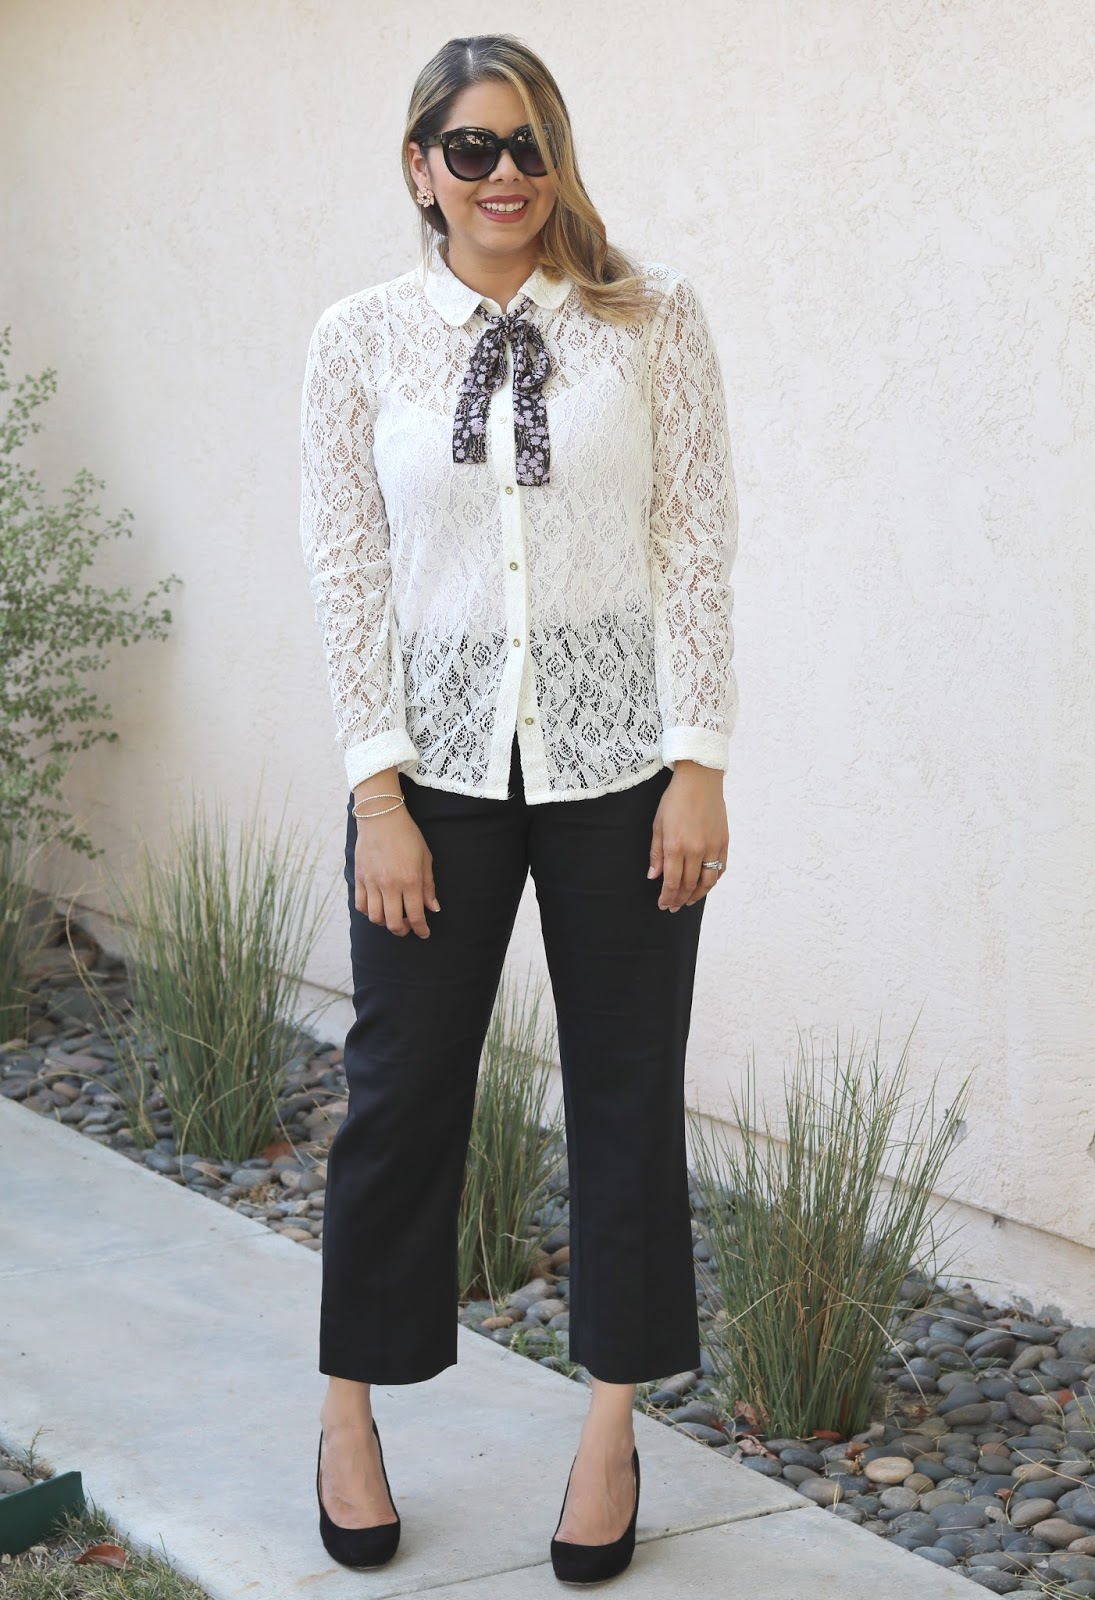 Feminine with a menswear touch, cropped black pants, how to wear cropped black pants, business chic outfit